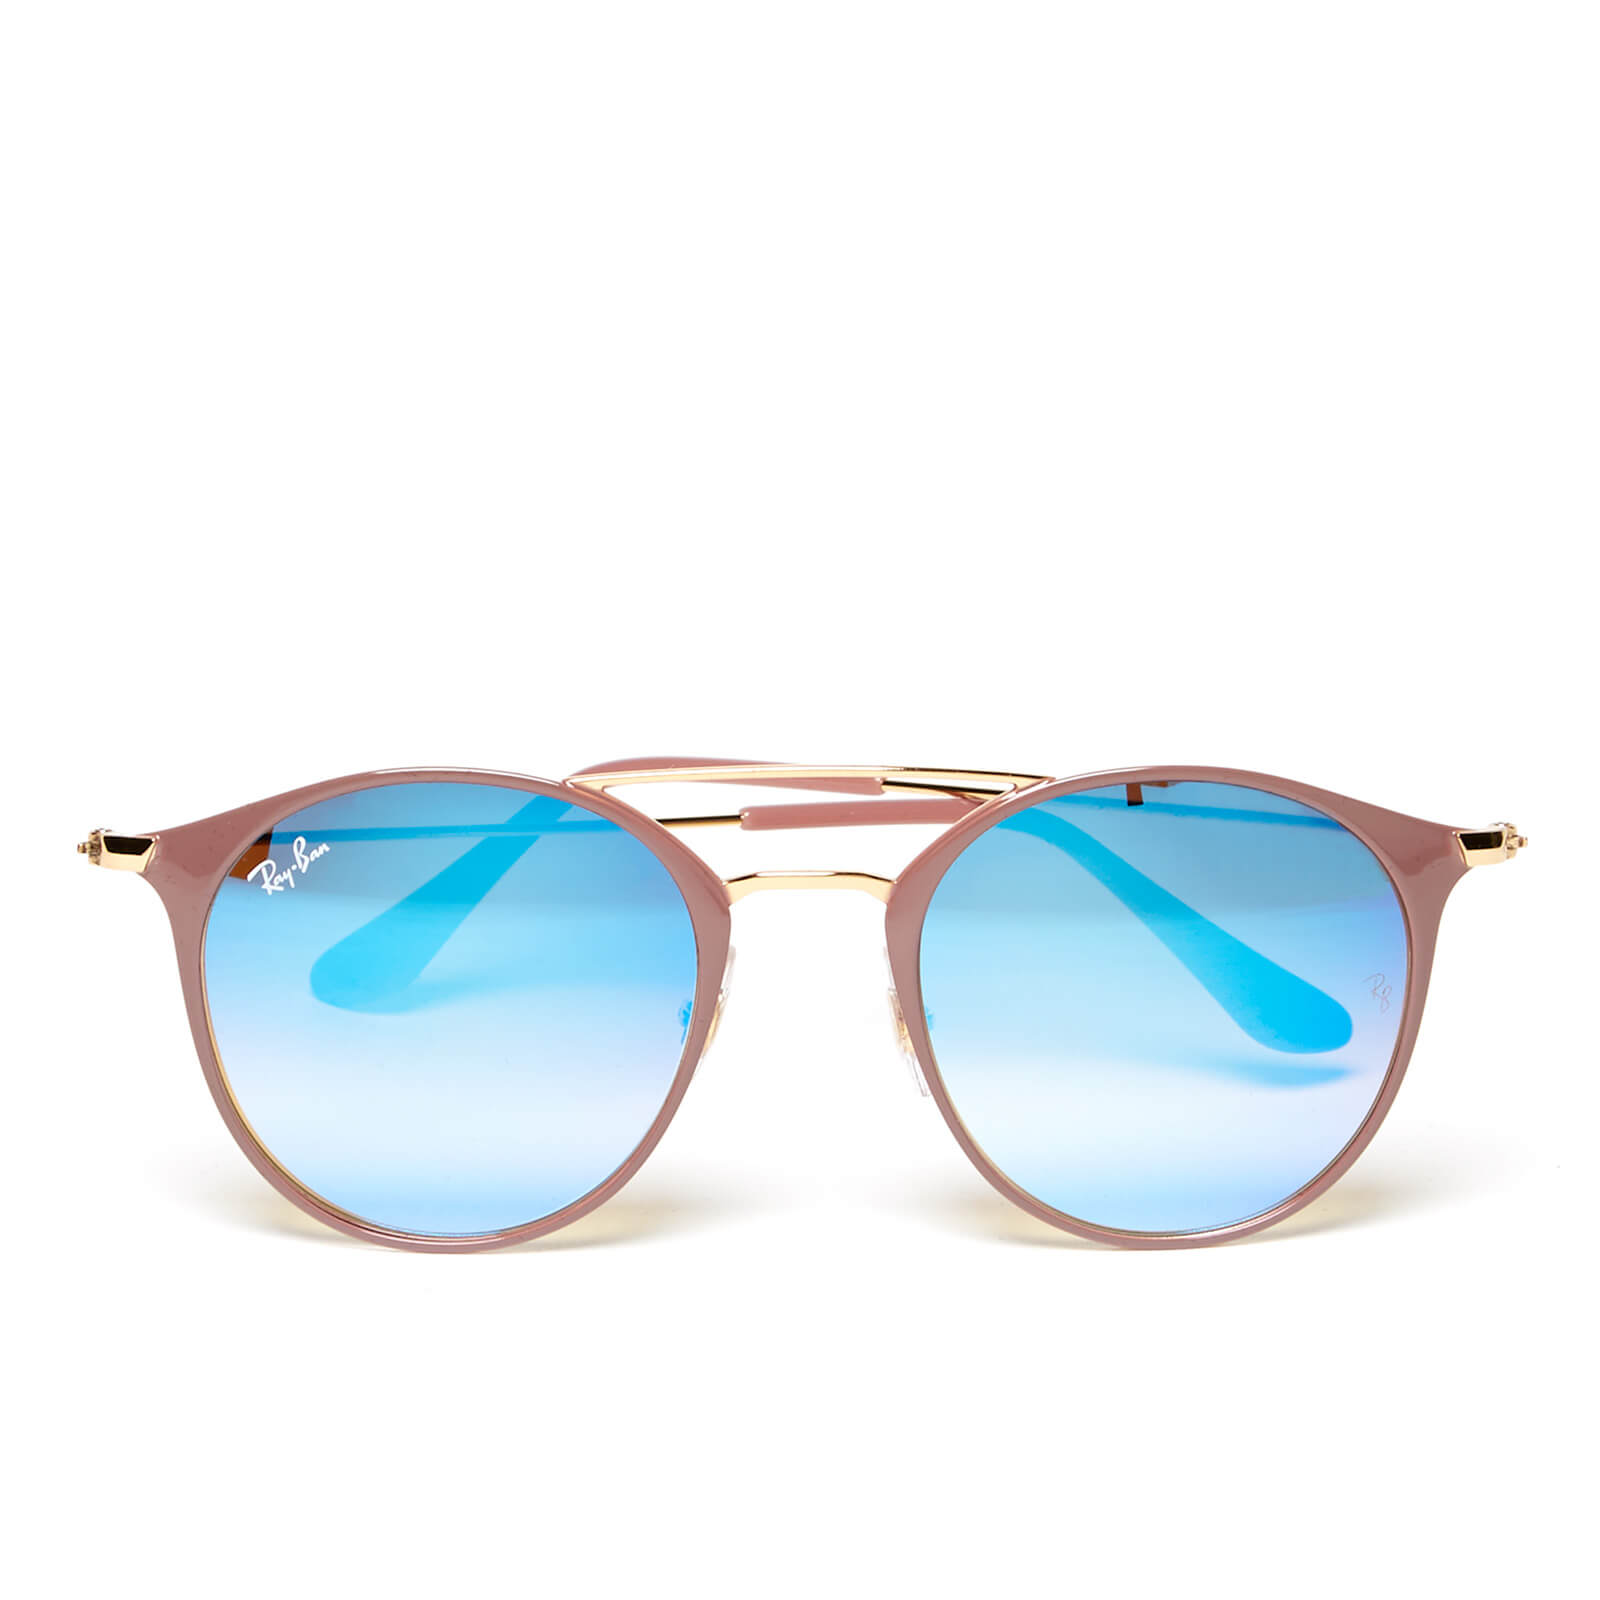 a2dda705322f6 Ray-Ban Round Metal Rose Frame Sunglasses - Gold Top Beige Blue Flash -  Free UK Delivery over £50